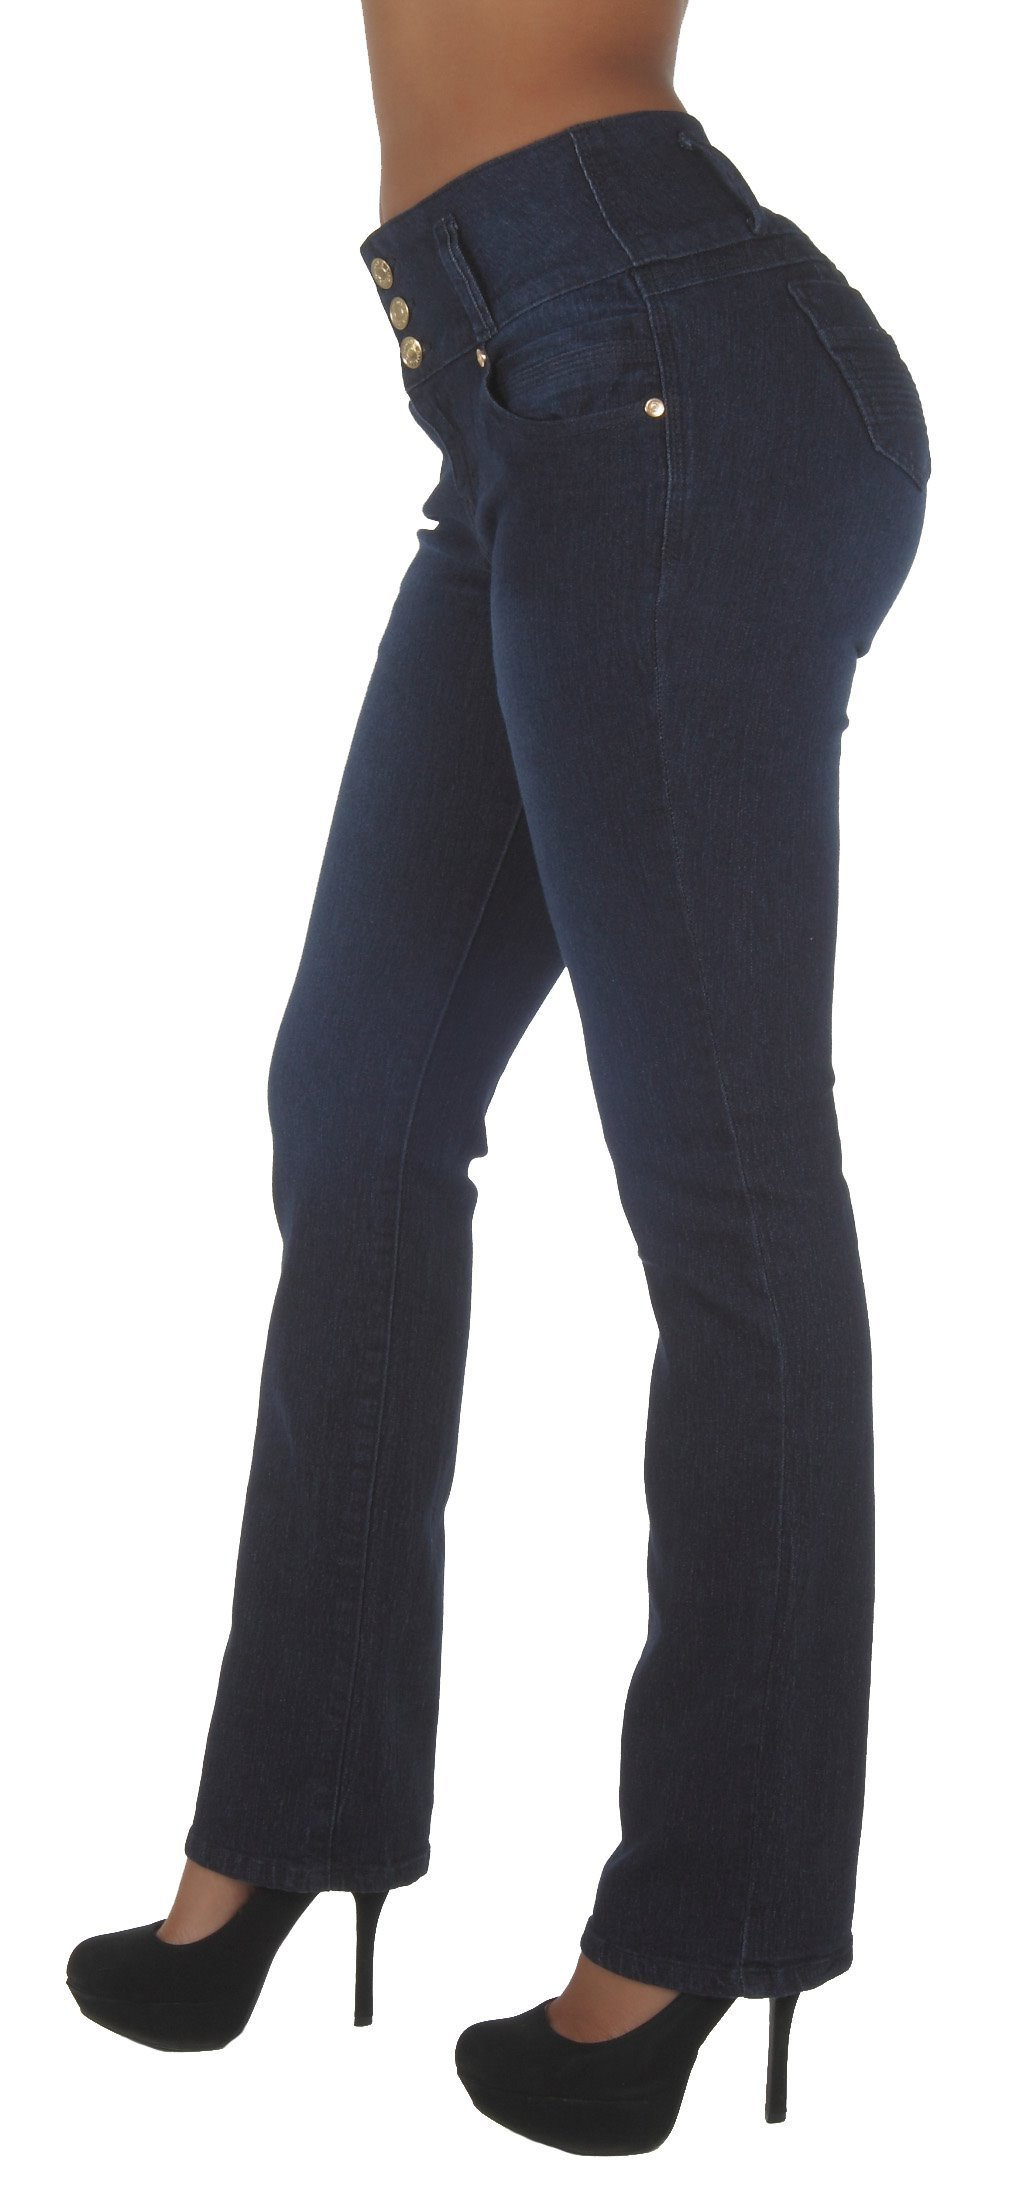 Fashion2Love N452BT-P– Plus Size, Butt Lifting, Levanta Cola, High Waist, Boot Leg Jeans in Navy Size 14